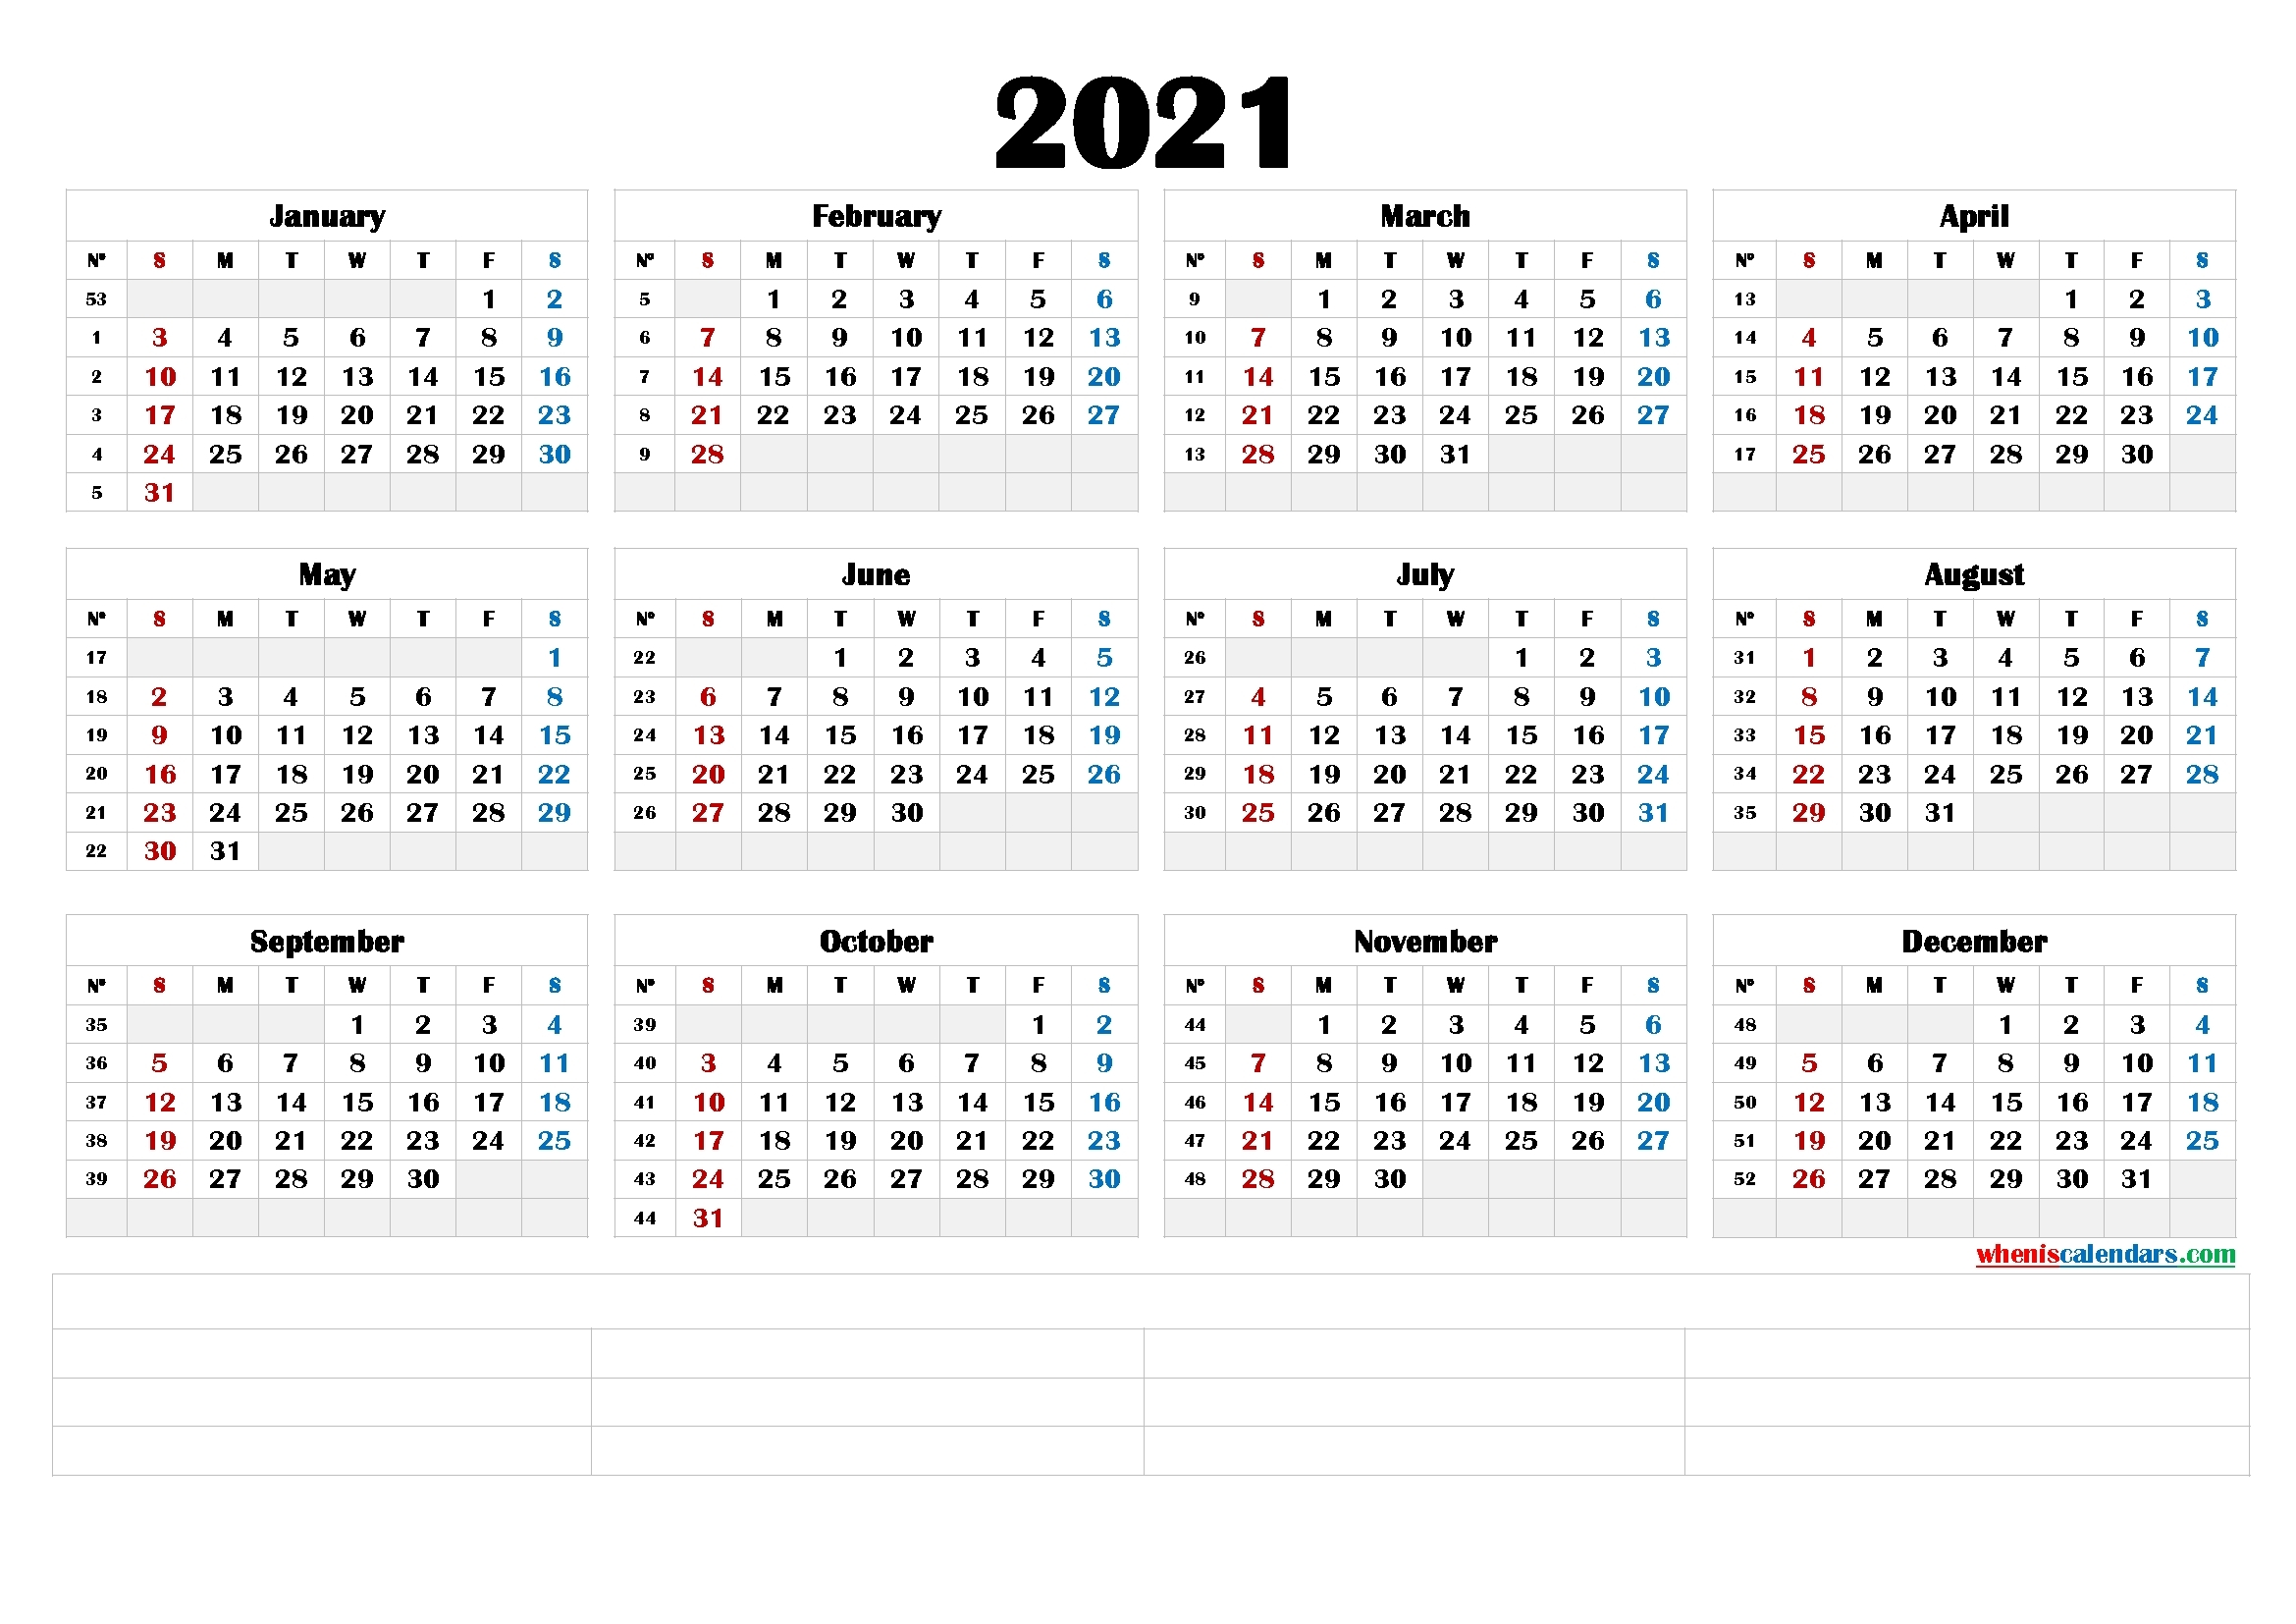 Free 2021 Yearly Calender Template - 24 Pretty Free